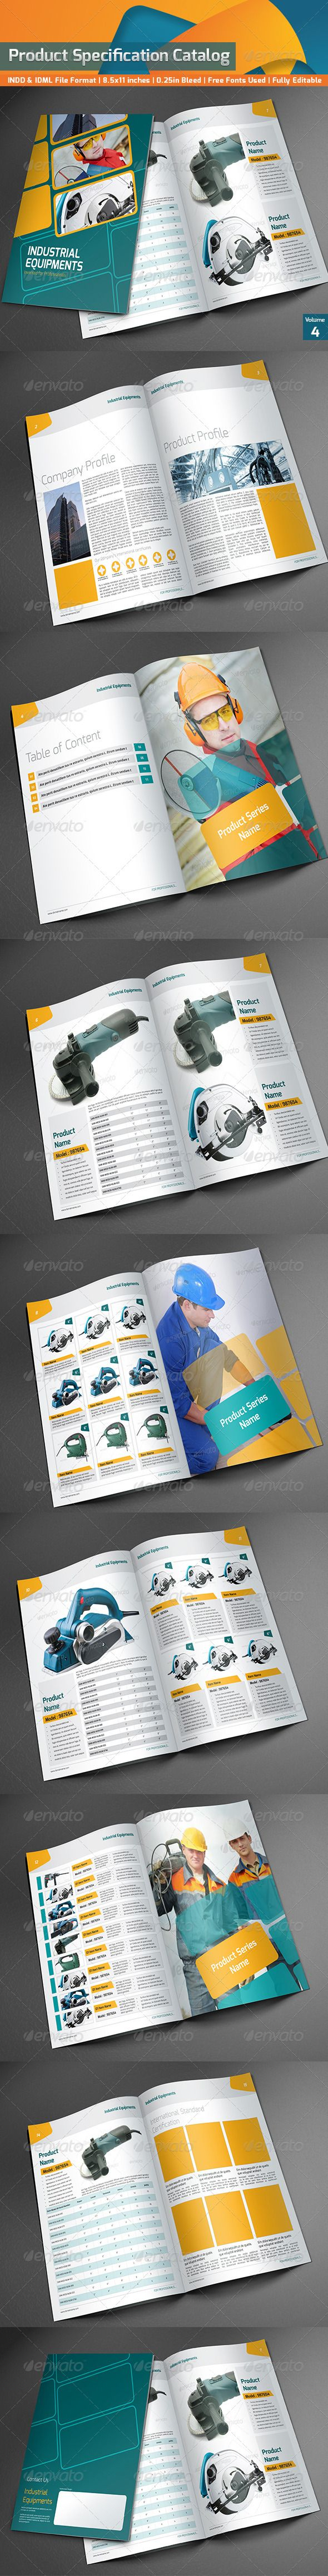 Product Specification Catalog V4